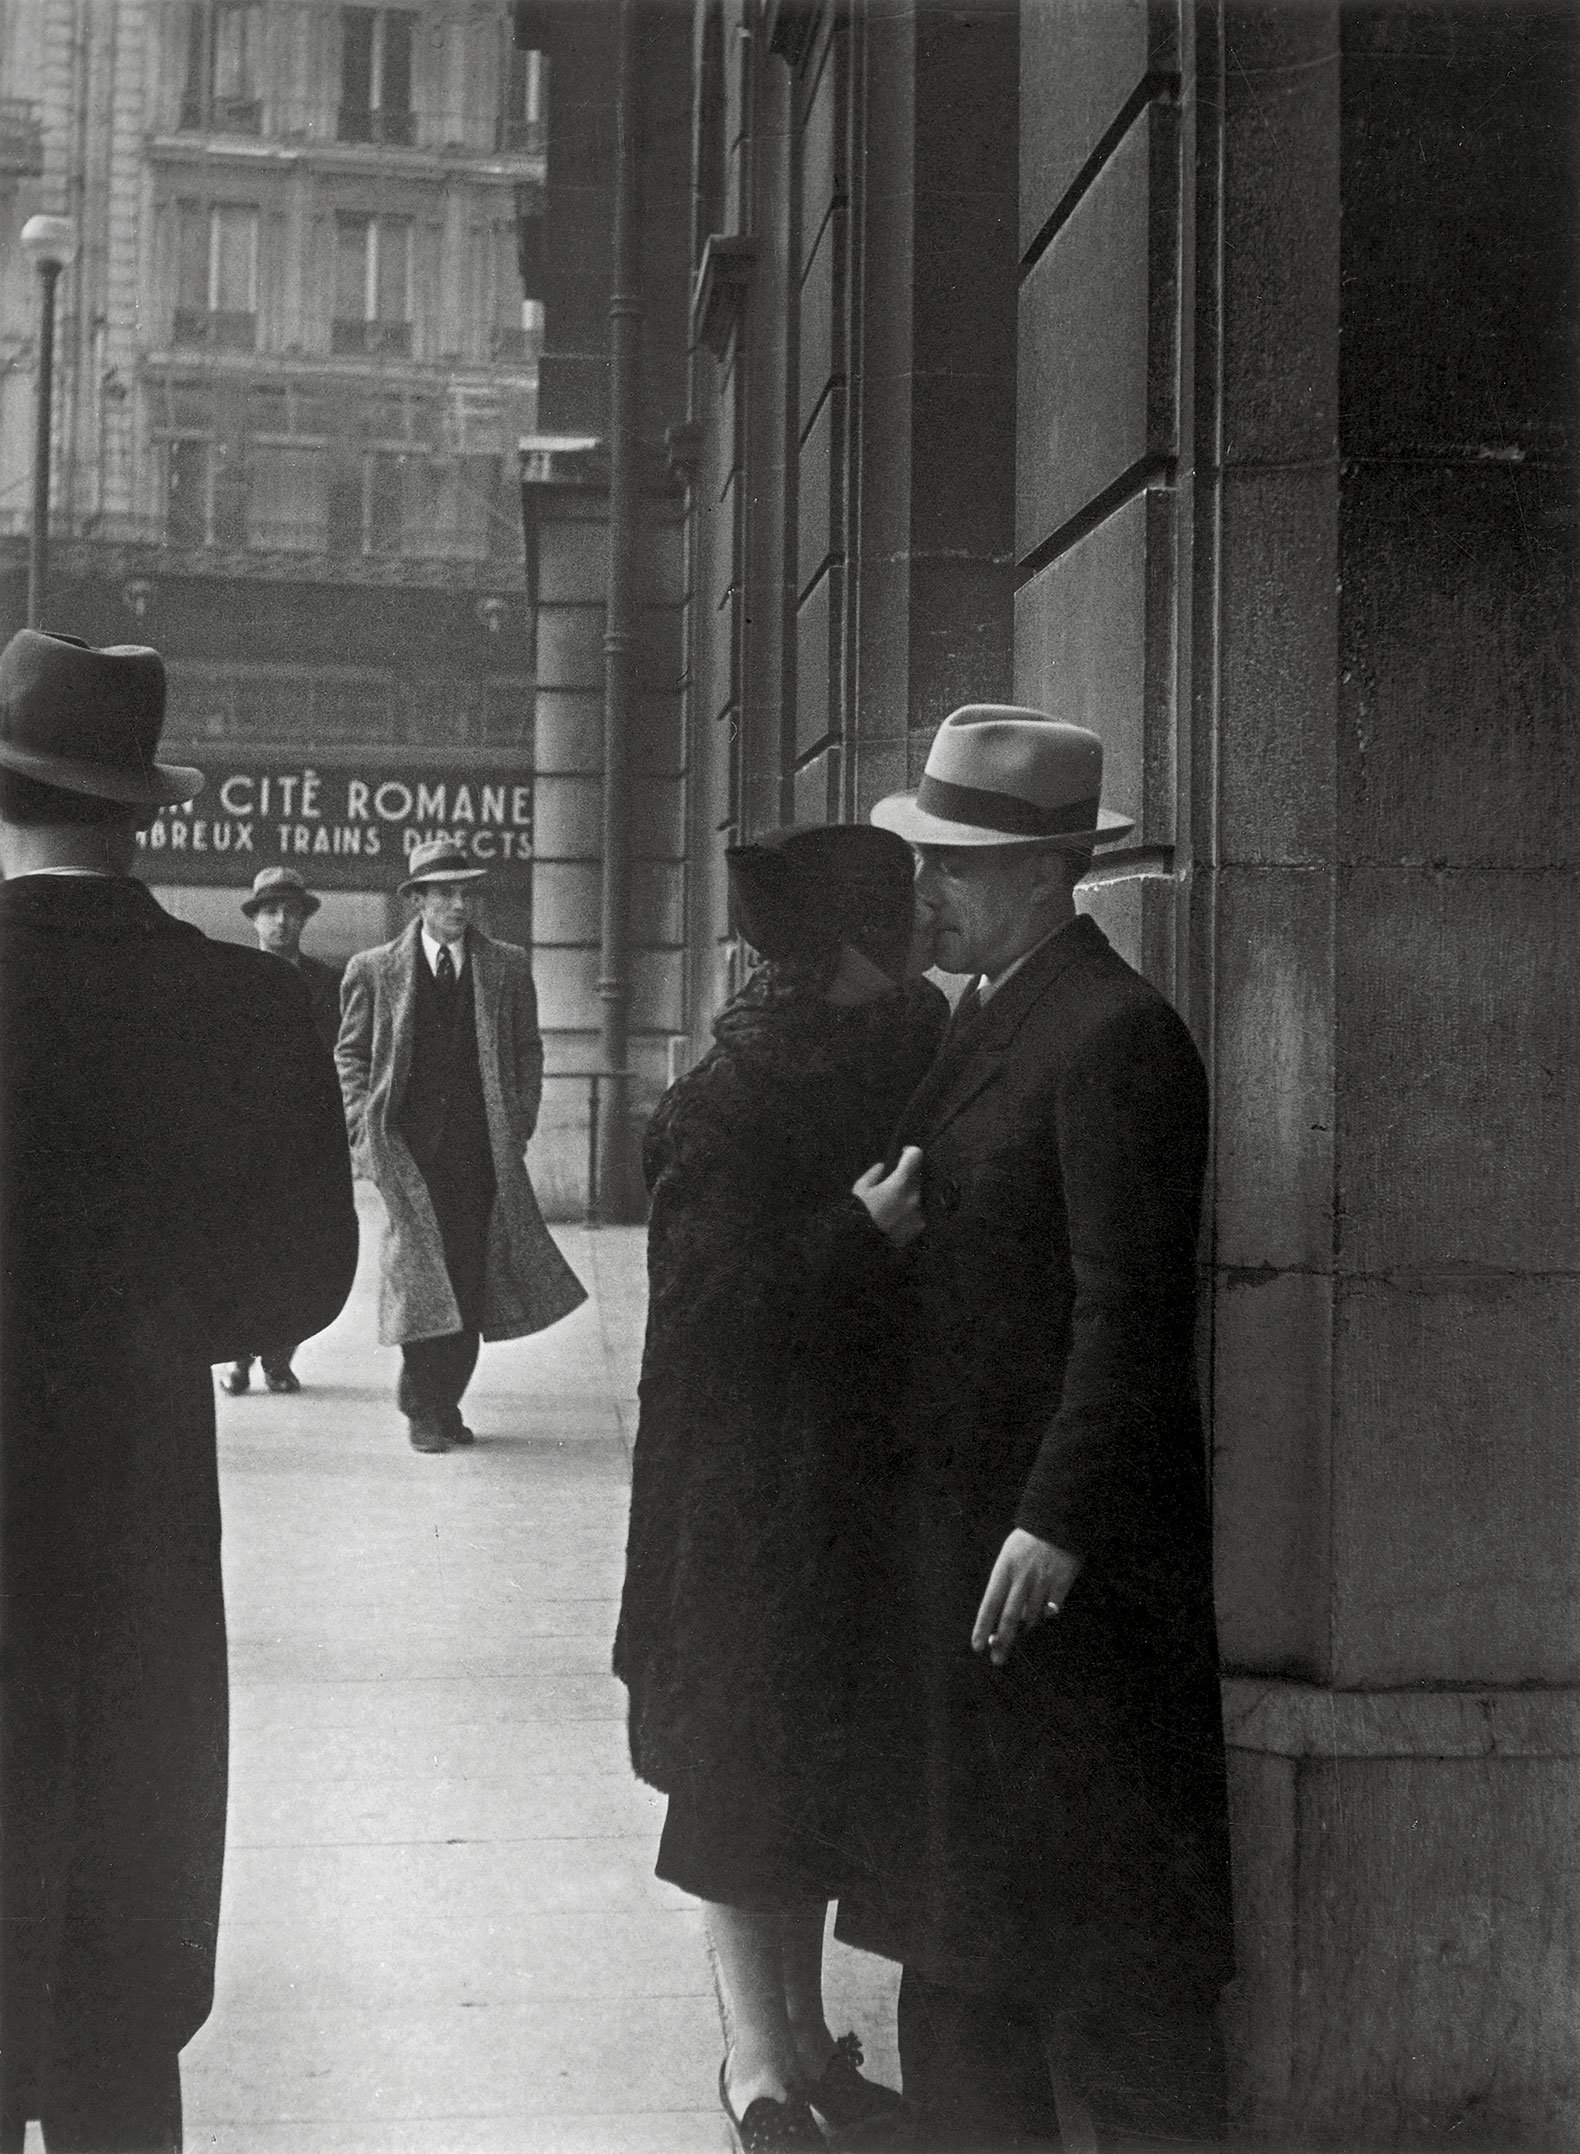 Brassaï. Lovers at the Gare Saint-Lazare. c. 1937. 23,6 x 17,3 cm [Plaisirs 143] Estate Brassaï Succession, Paris. © Estate Brassaï Succession, Pari